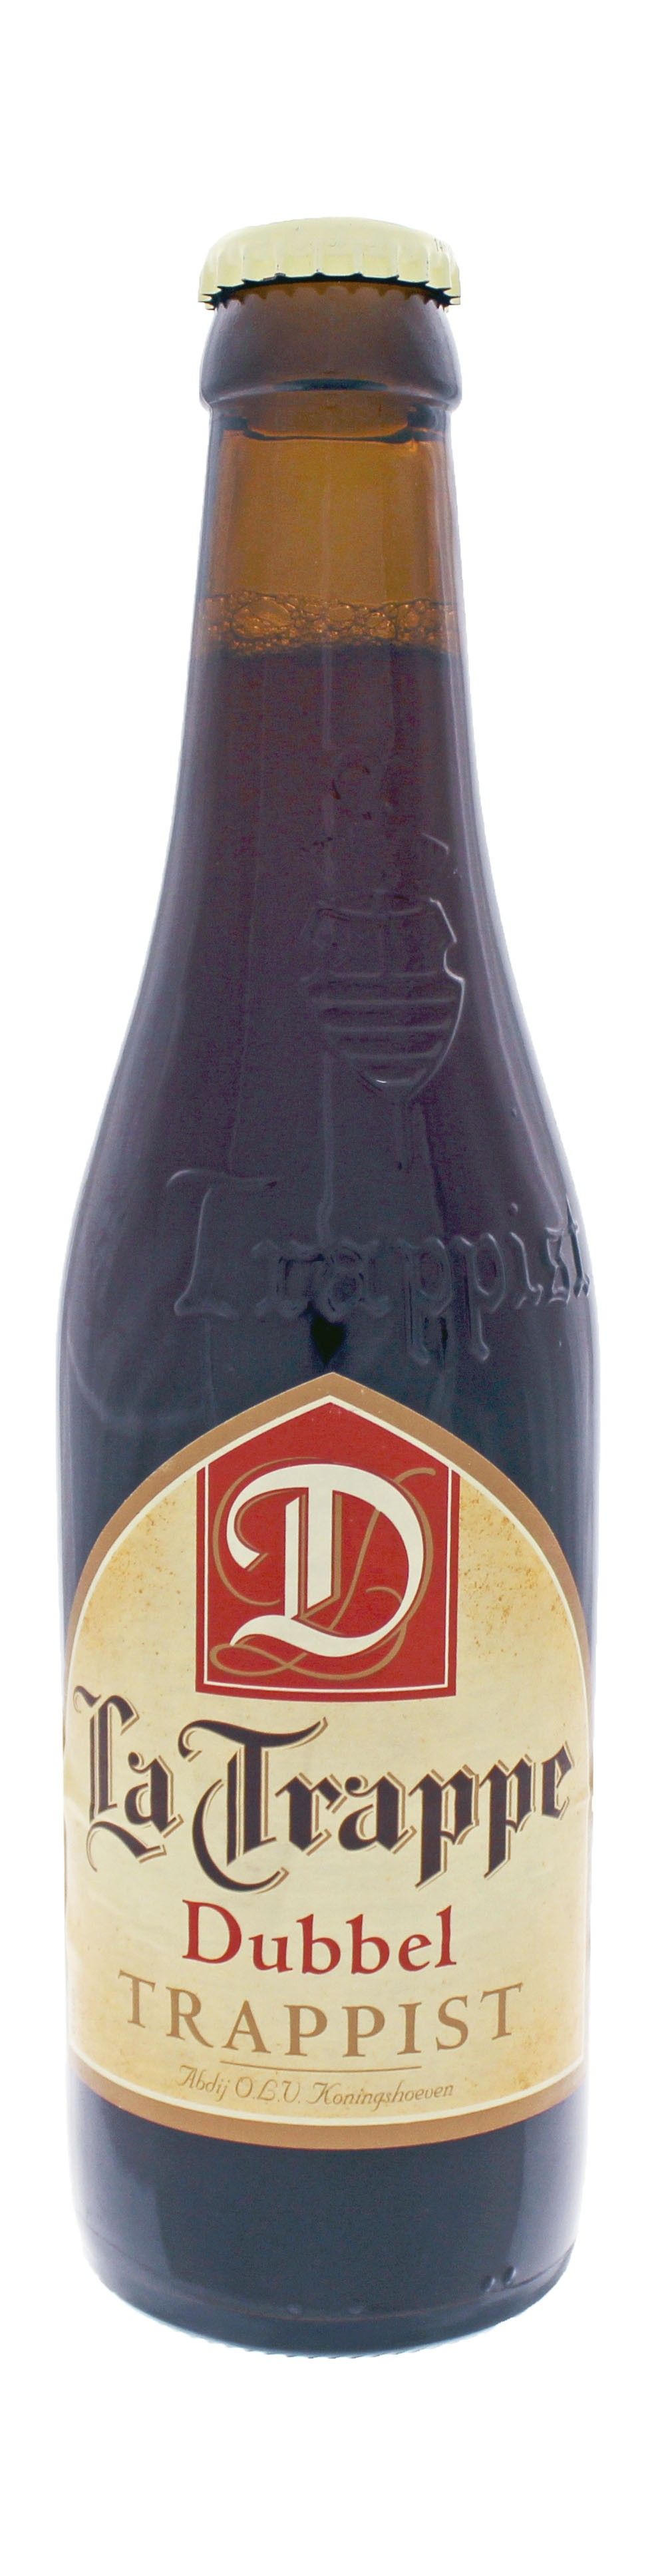 Photo de face de La Trappe Trappist Dubbel